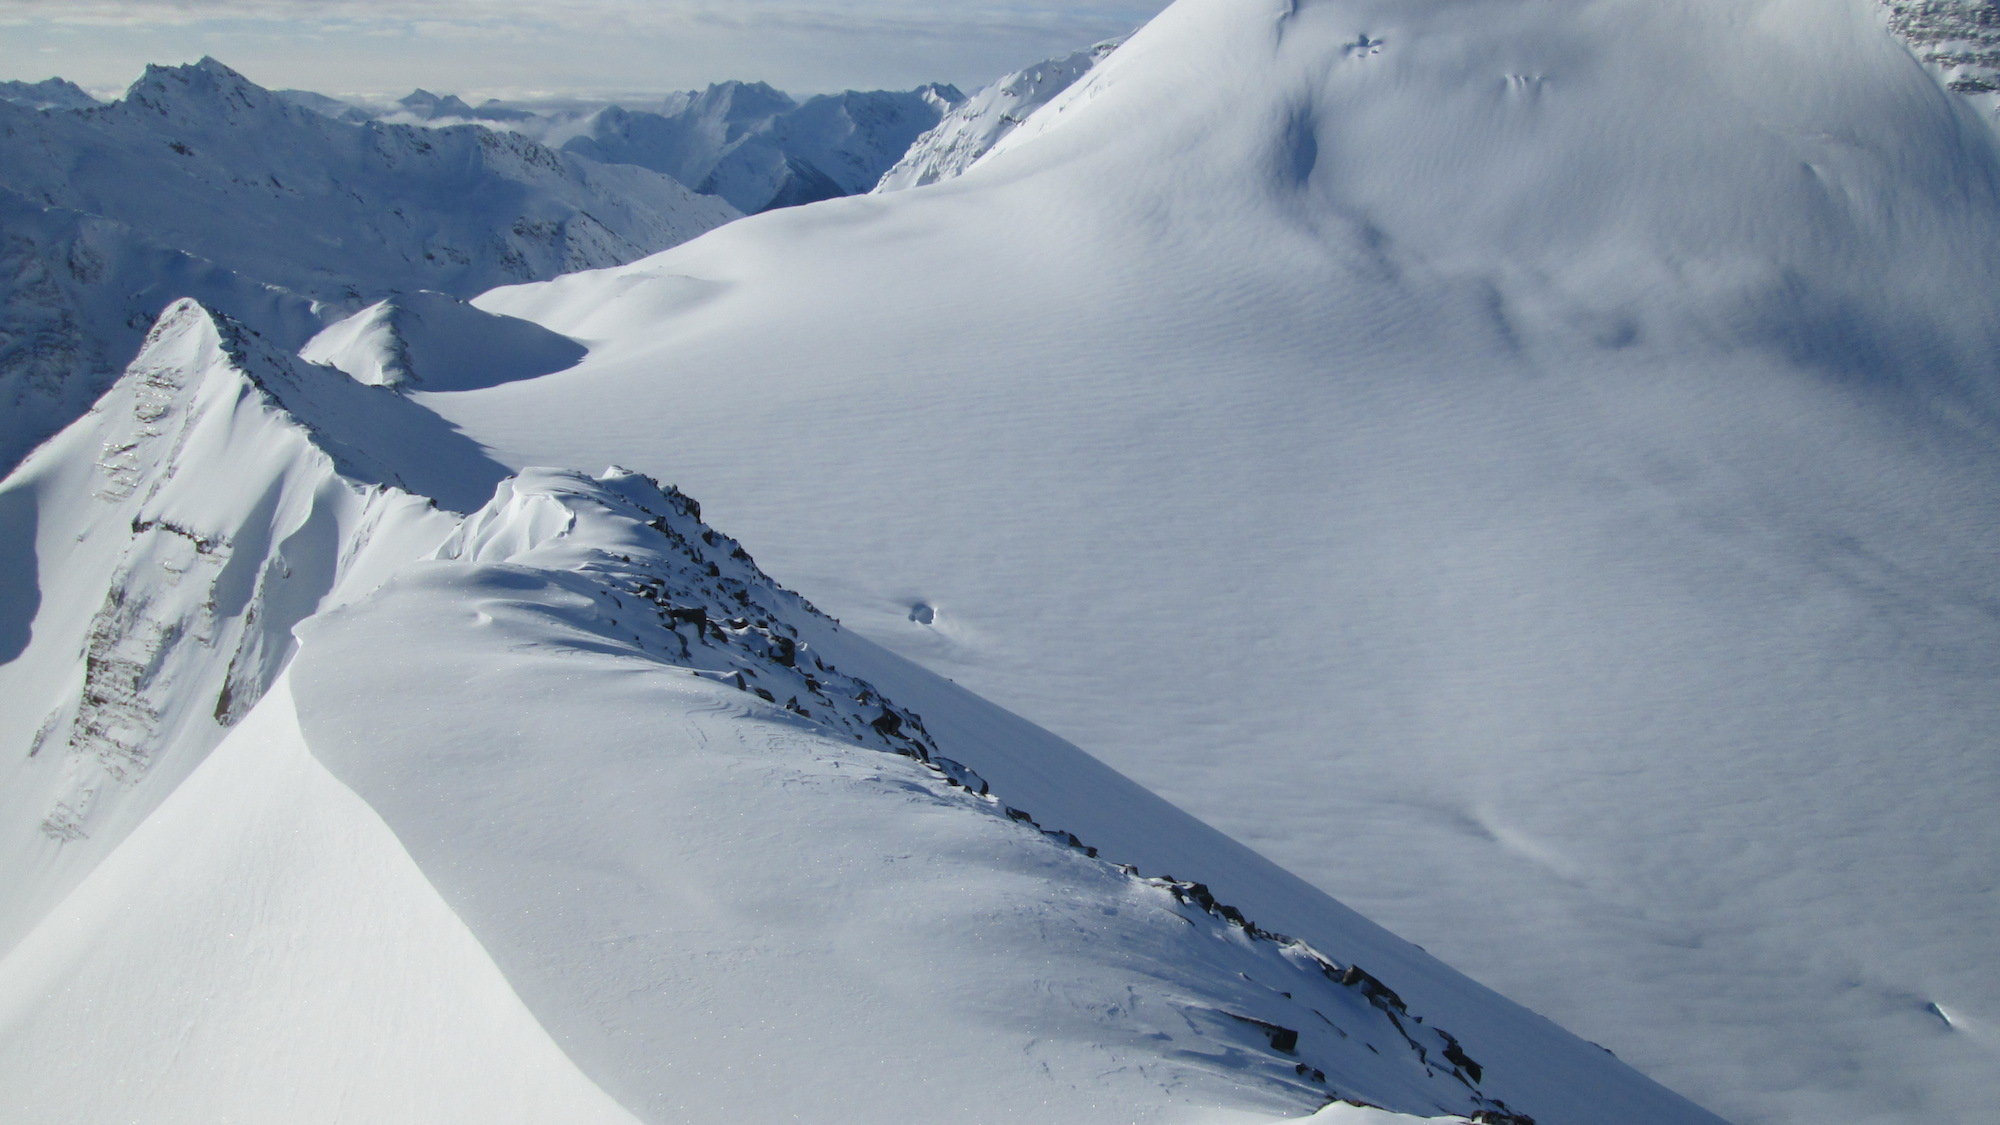 Photo of future ski resort area. image: valemountglaciers.com